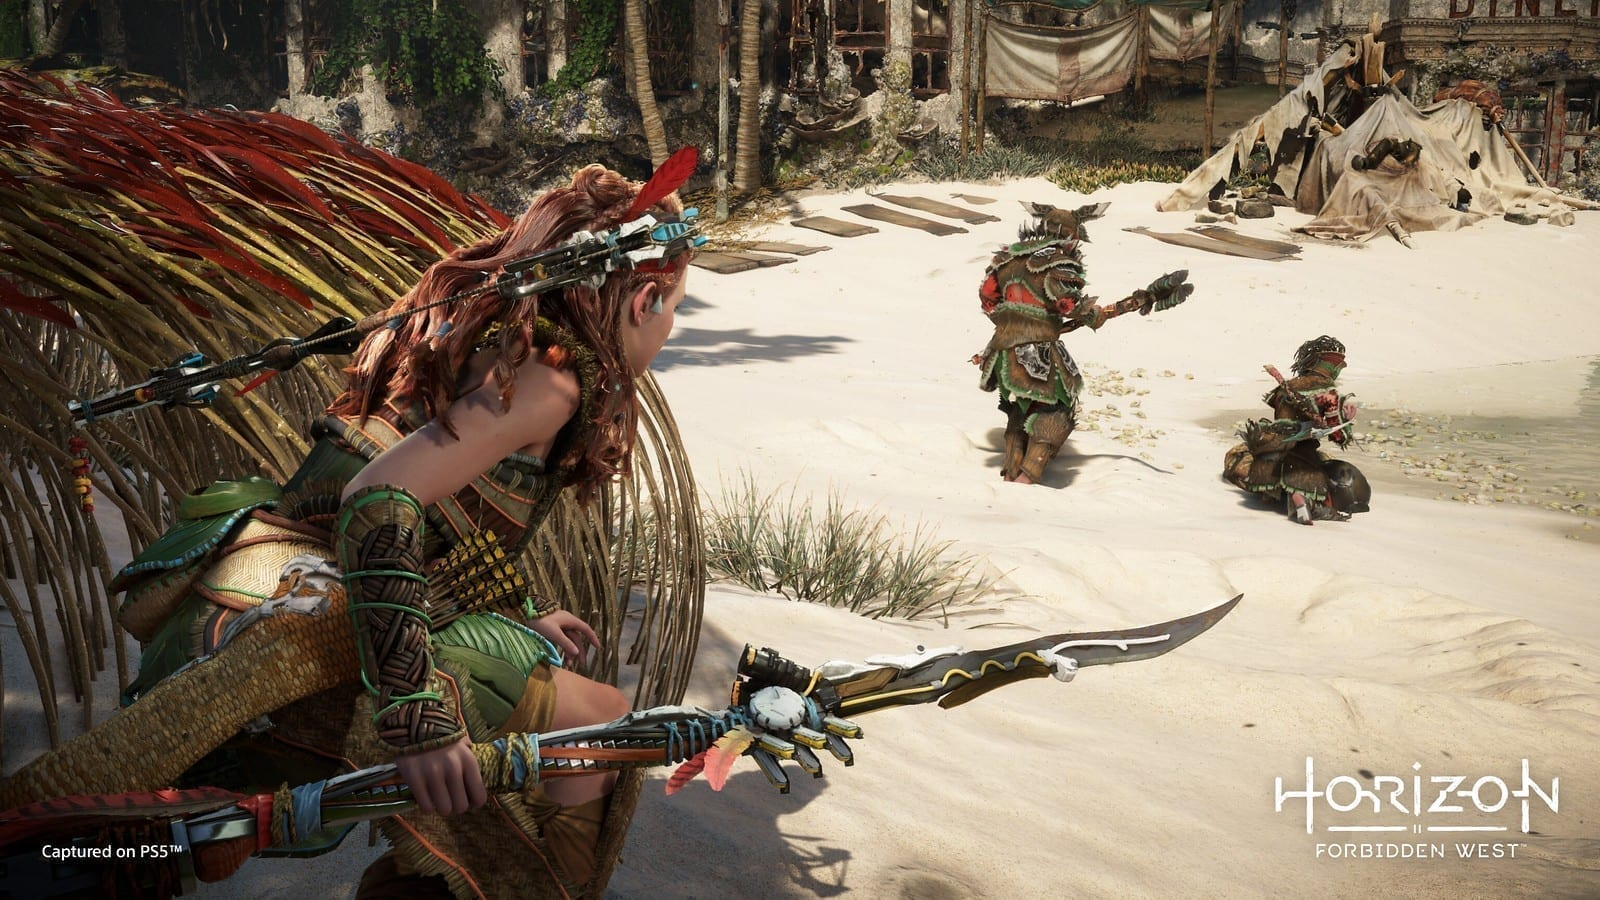 Horizon Forbidden West State of Play Shows Off Brand New Gameplay